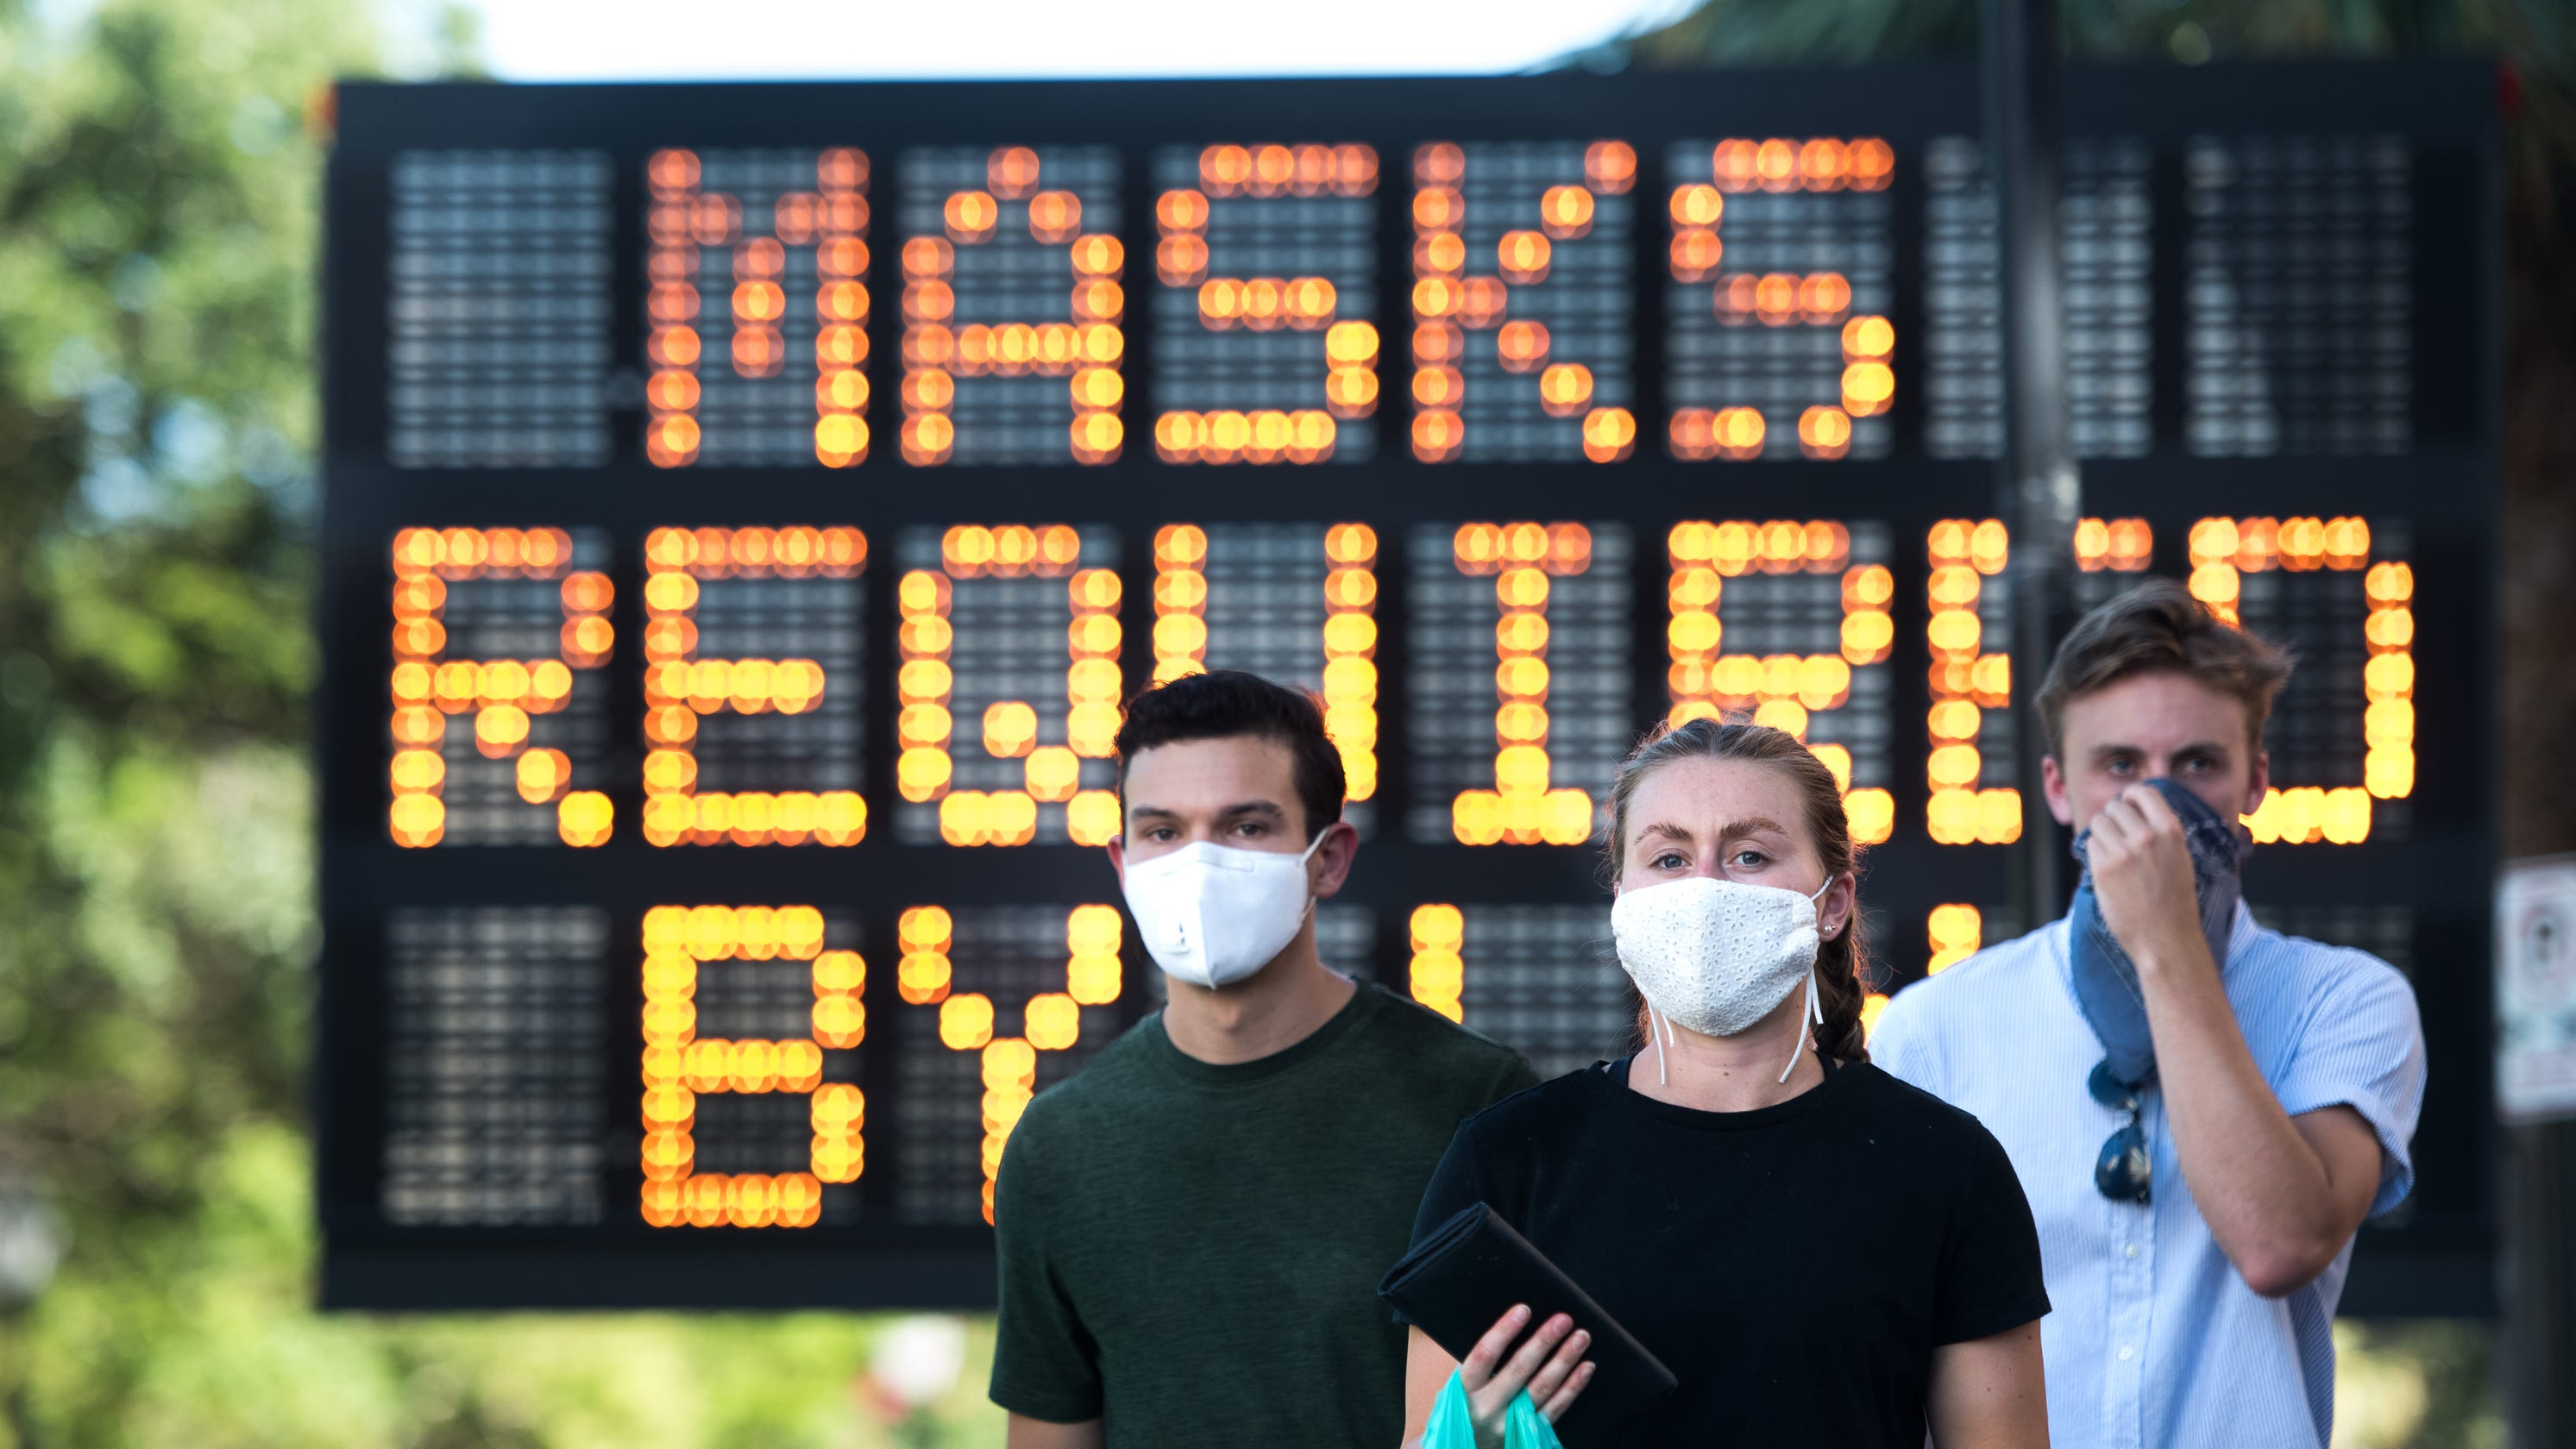 Coronavirus updates: US deaths surpass 150,000; AG Barr tests negative; Pelosi mandates masks on House floor